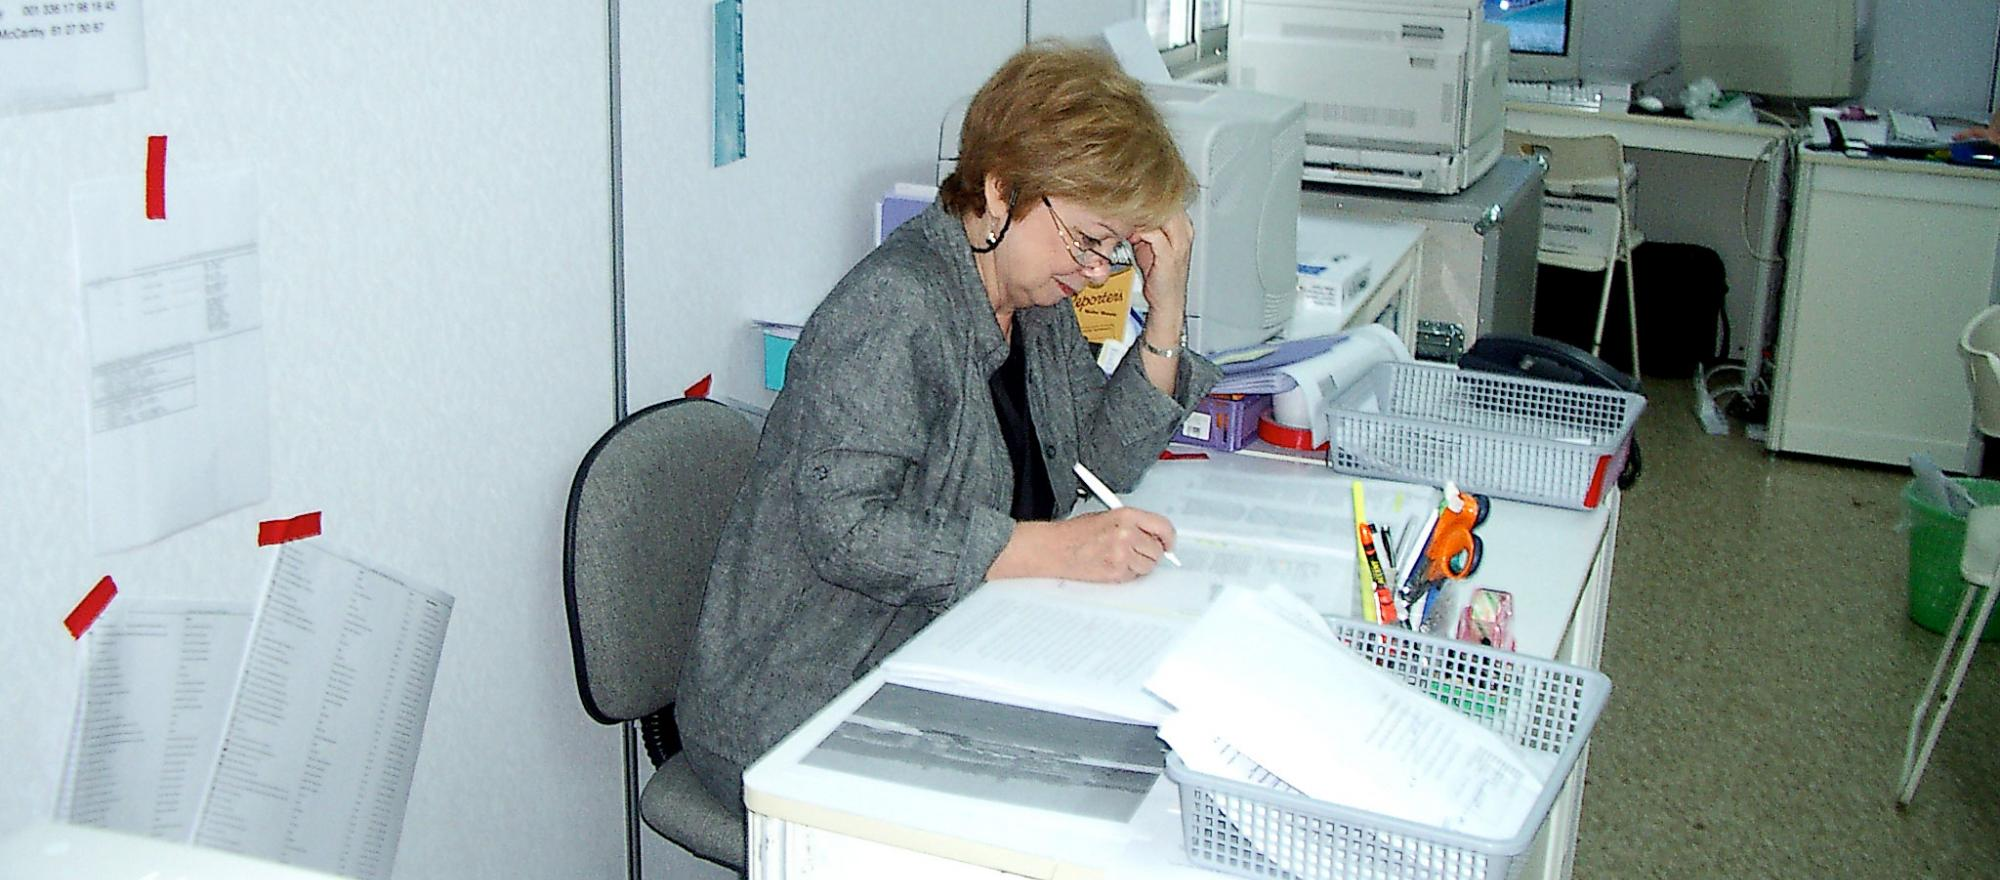 Mary Mahoney working